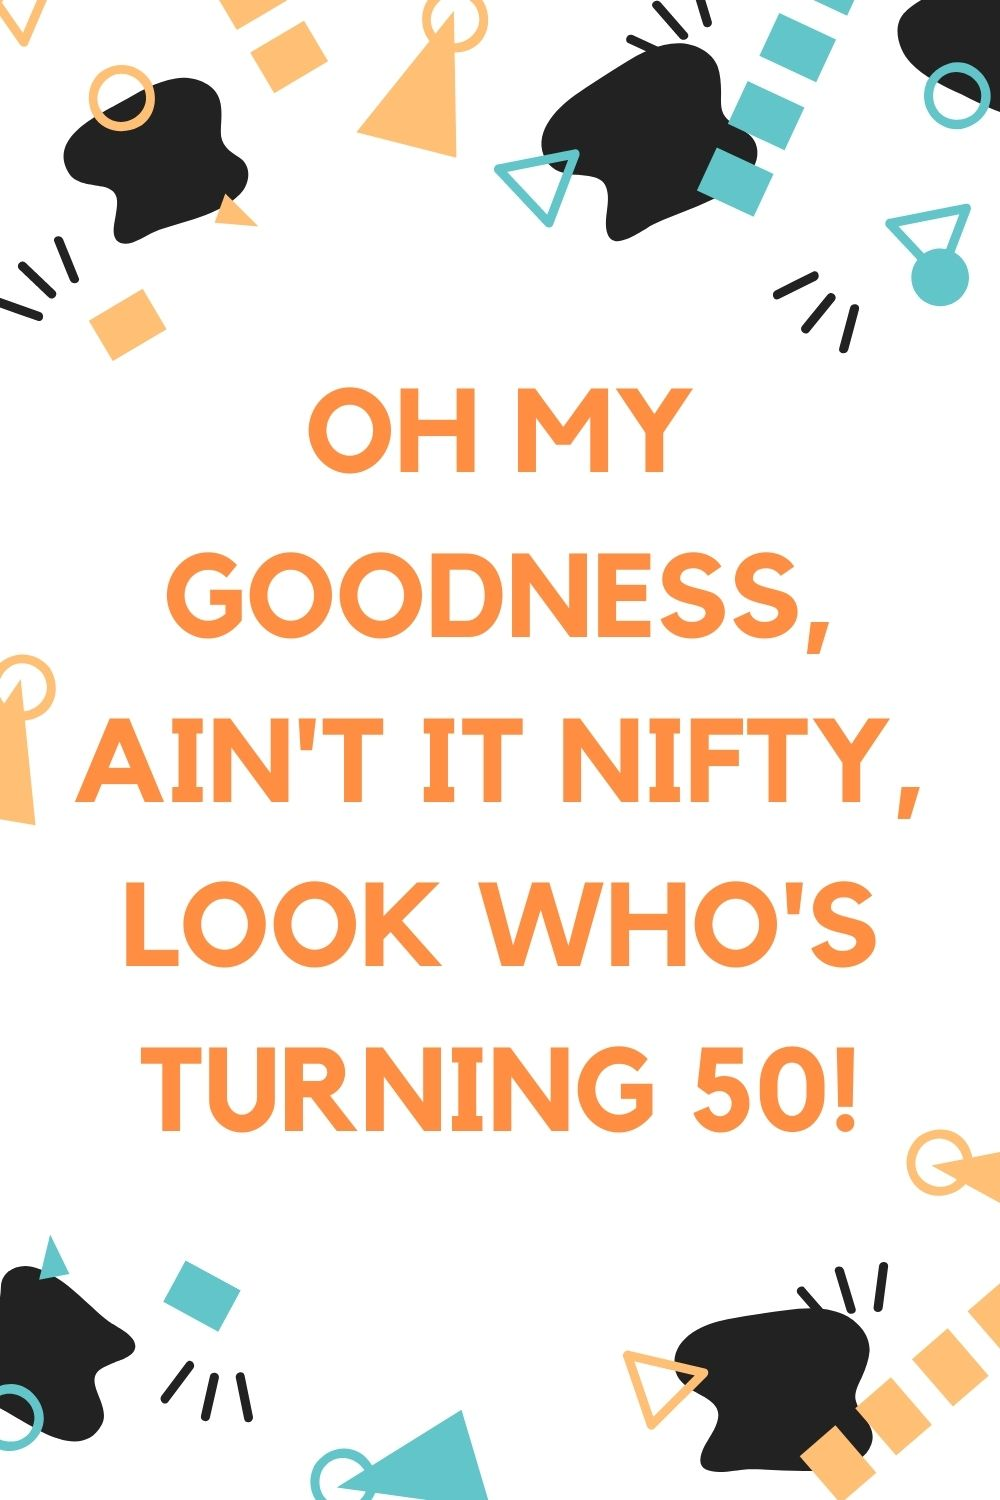 50th birthday invitation - Oh my goodness, ain't it nifty, look who's turning 50!